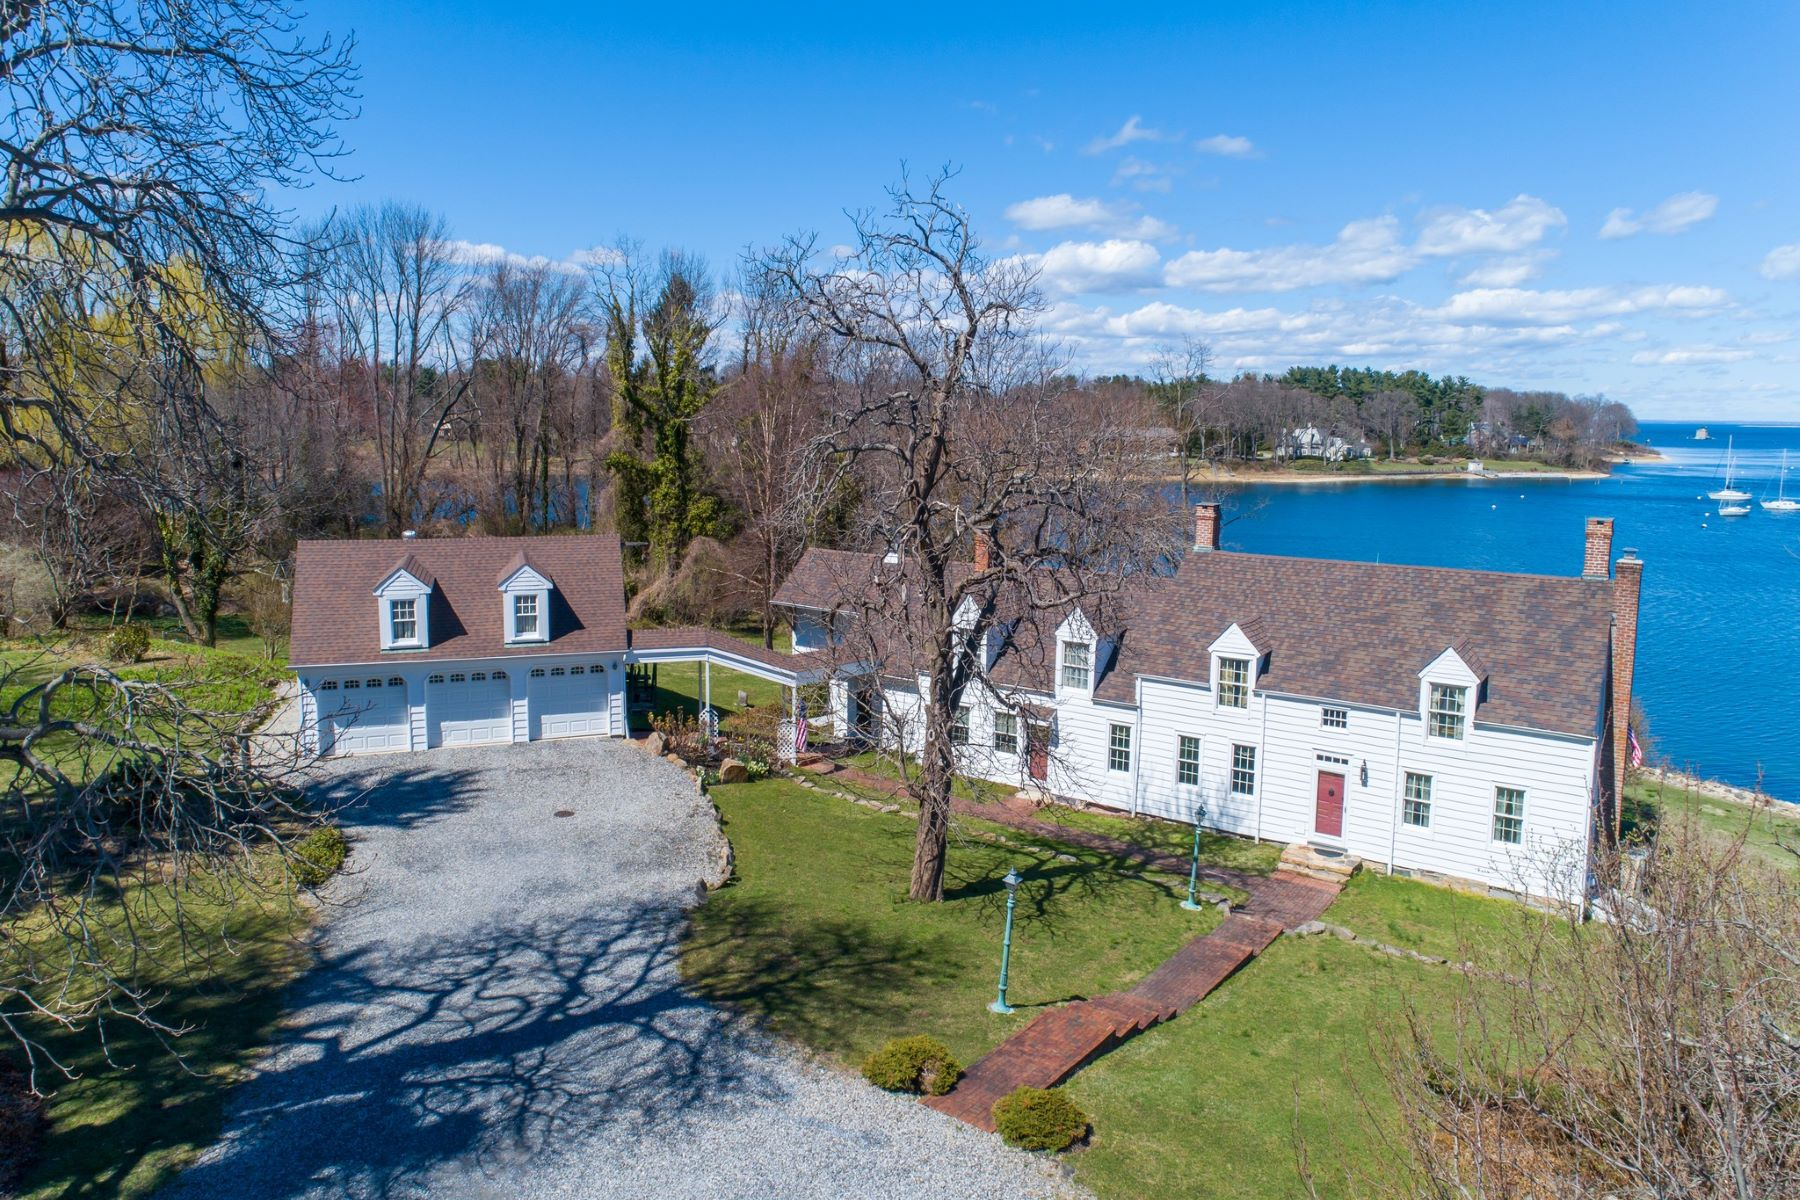 Single Family Homes for Sale at Lloyd Harbor 26 Van Wyck Ln Lloyd Harbor, New York 11743 United States